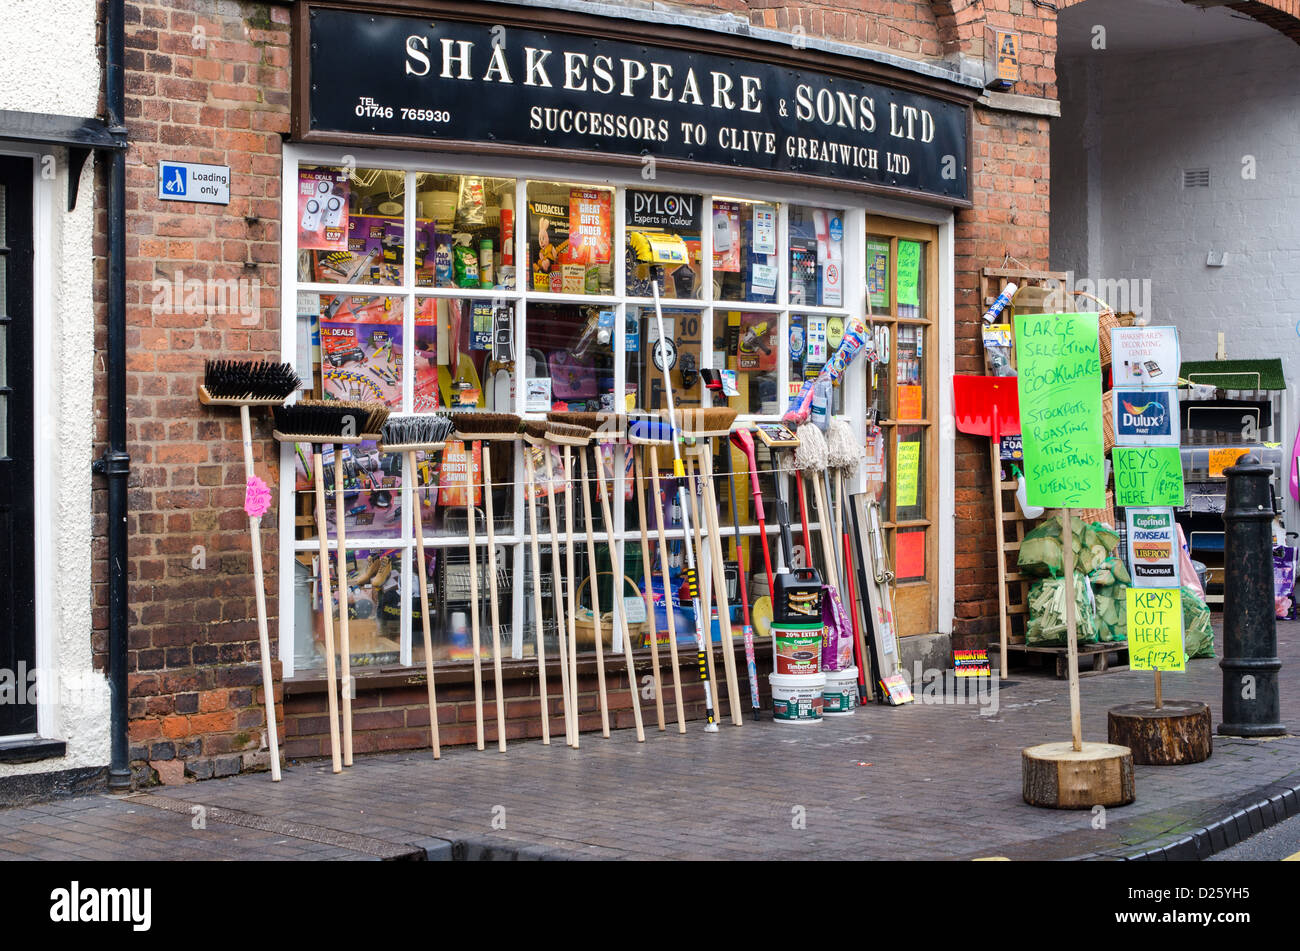 shakespeare sons traditional hardware store in bridgnorth stock photo royalty free image. Black Bedroom Furniture Sets. Home Design Ideas